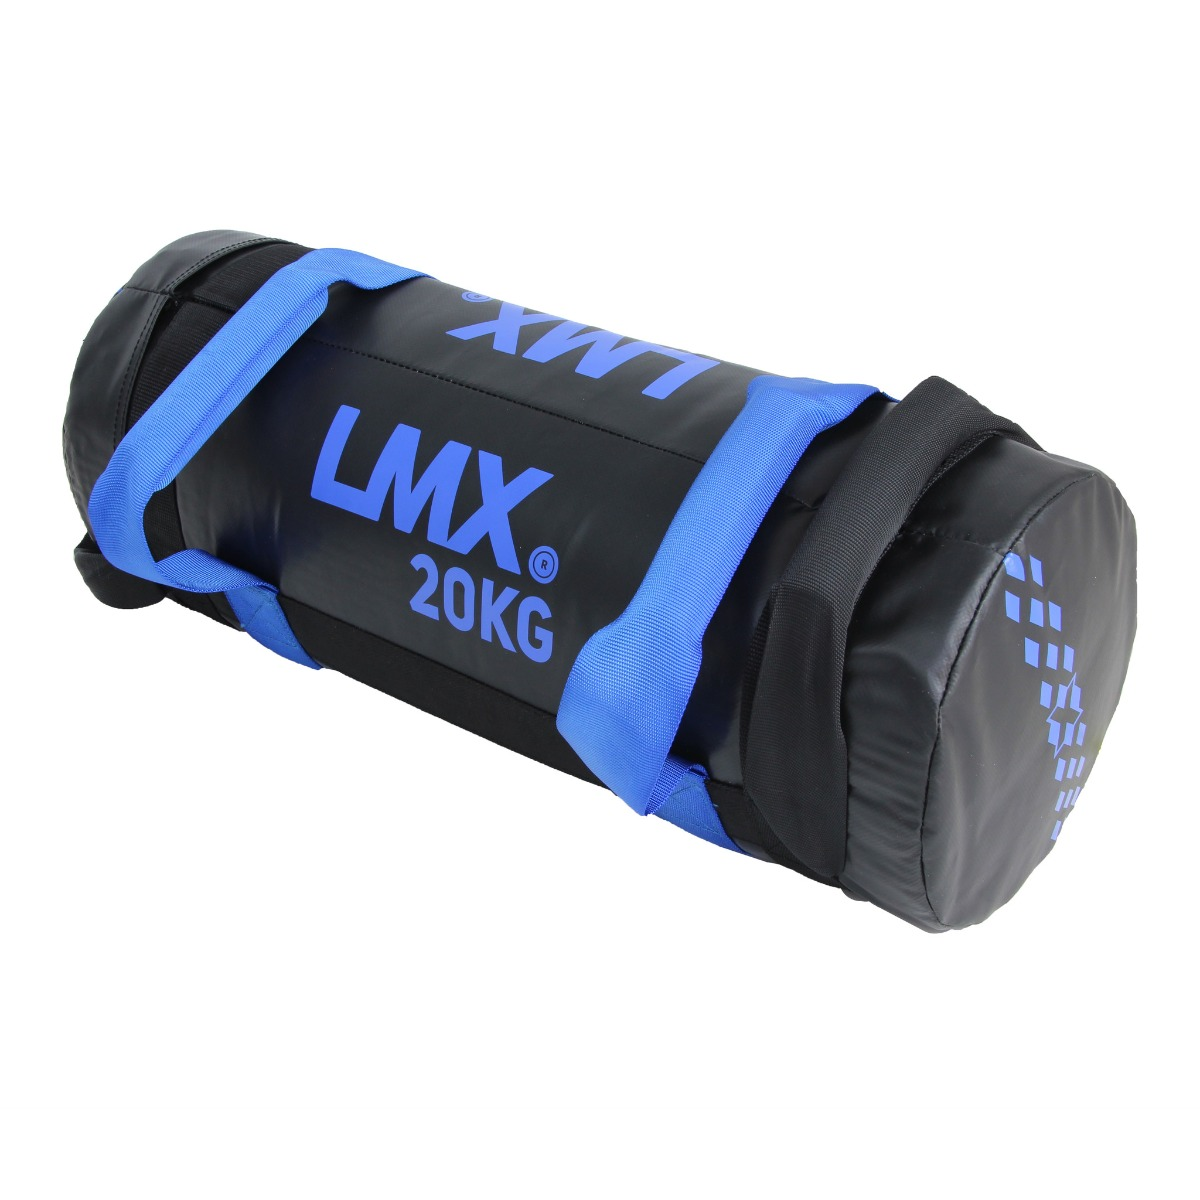 LMX WEIGHTBAG - GEWICHTSZAK - POWER BAG - BISONYL - 20 KILO - JOKASPORT.NL